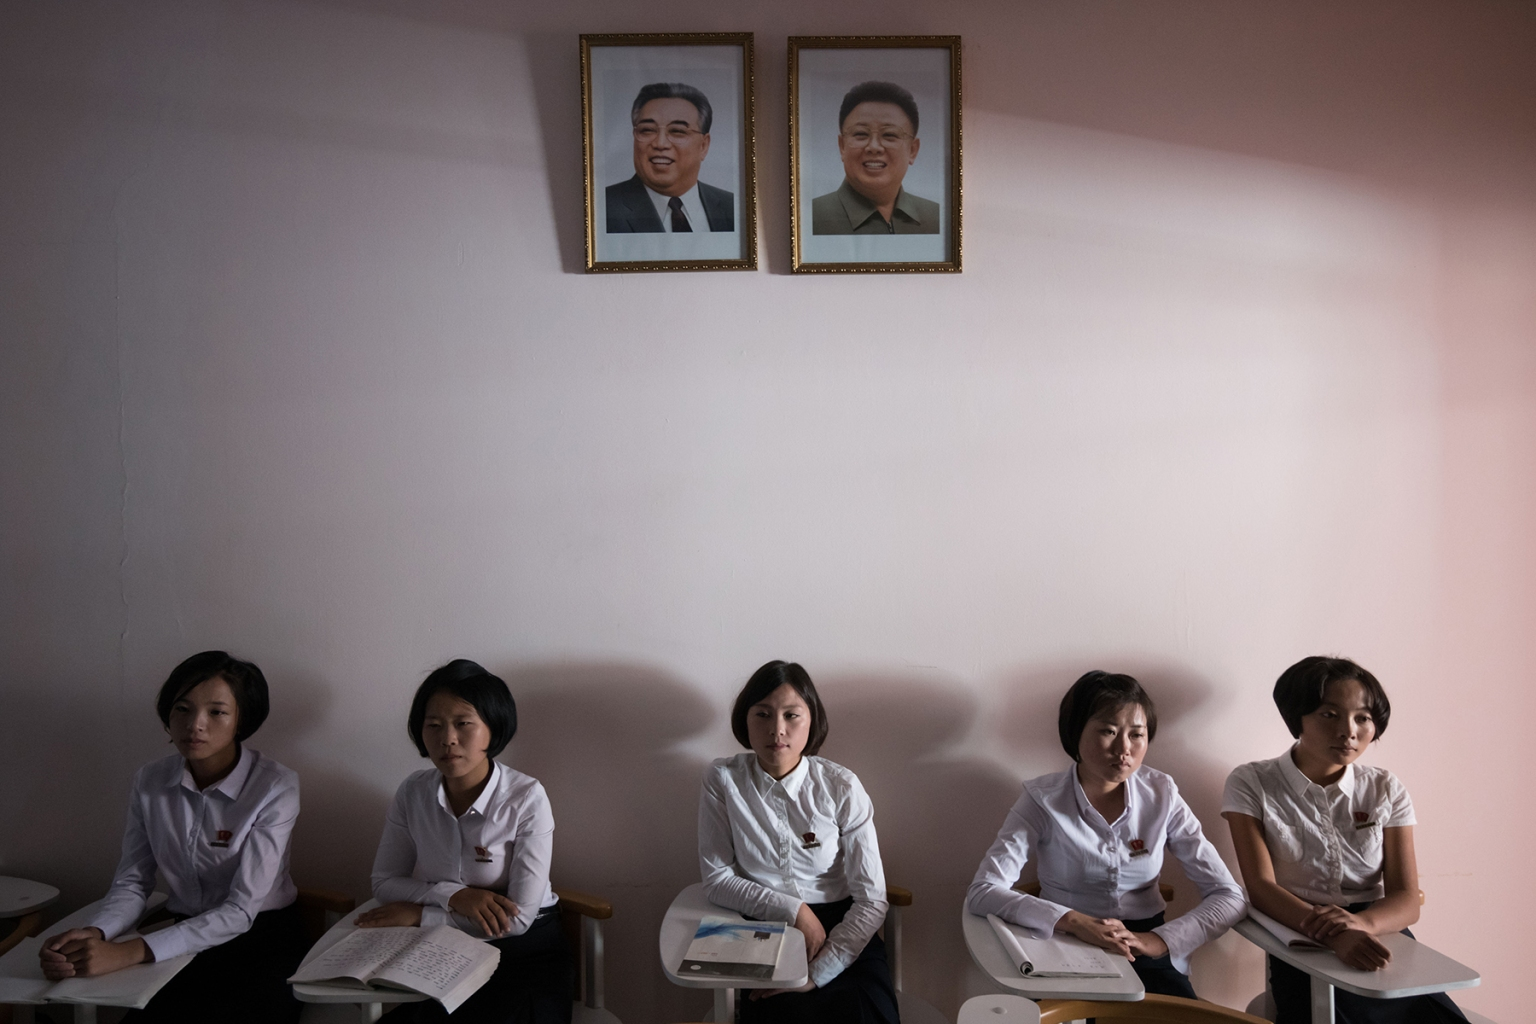 Students sit beneath the portraits of late North Korean leaders Kim Il Sung and Kim Jong Il during a tour for visiting foreign media at a teacher training college in Pyongyang on Sept. 7. ED JONES/AFP/Getty Images